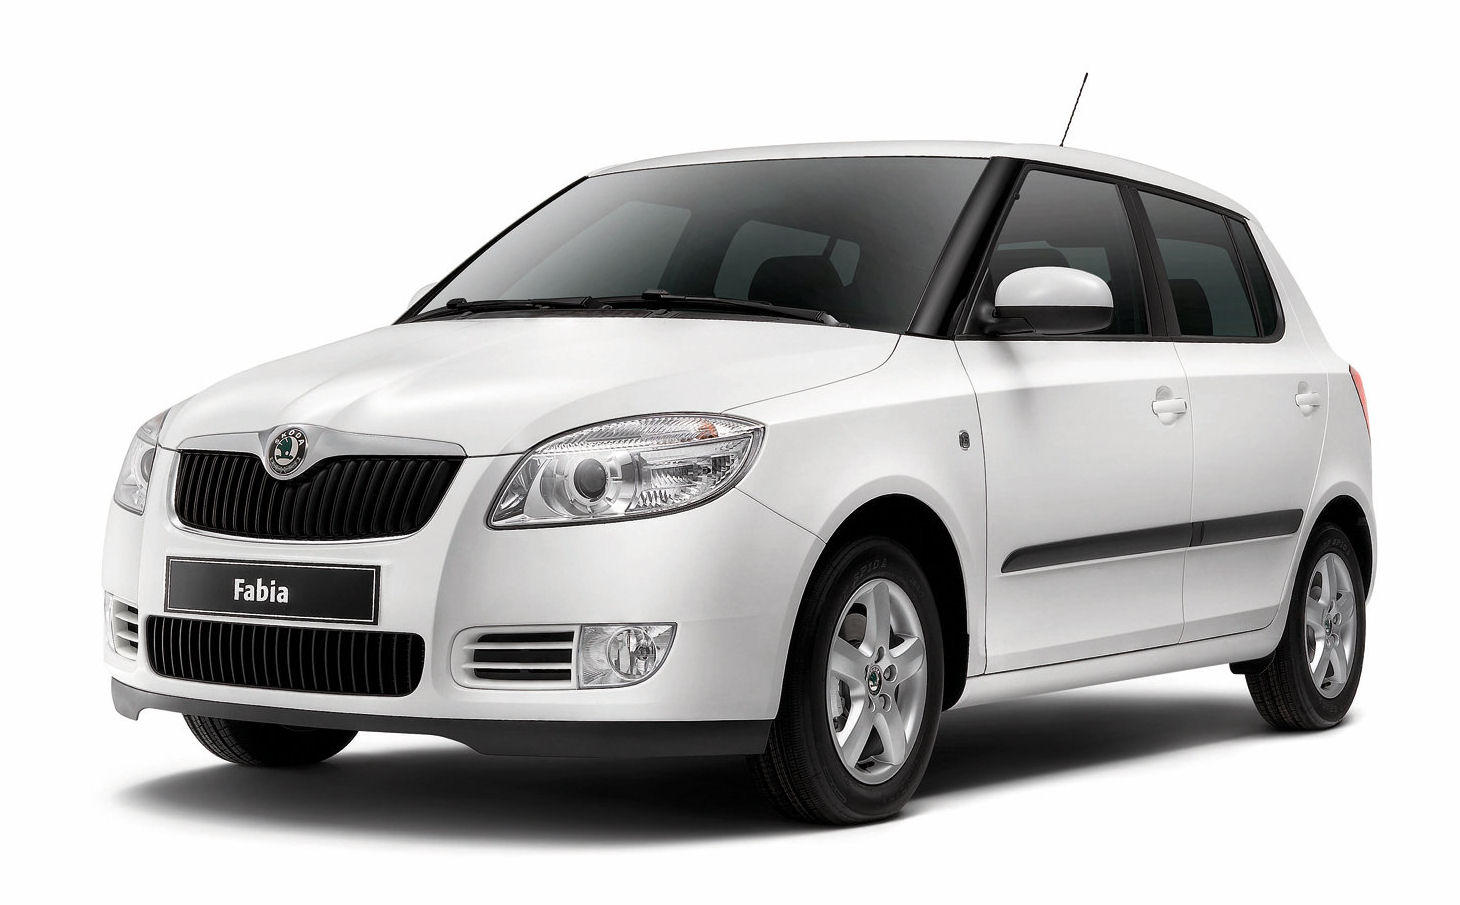 skoda fabia dati tecnici auto auto specifiche informazioni sul consumo di carburante dei veicoli. Black Bedroom Furniture Sets. Home Design Ideas